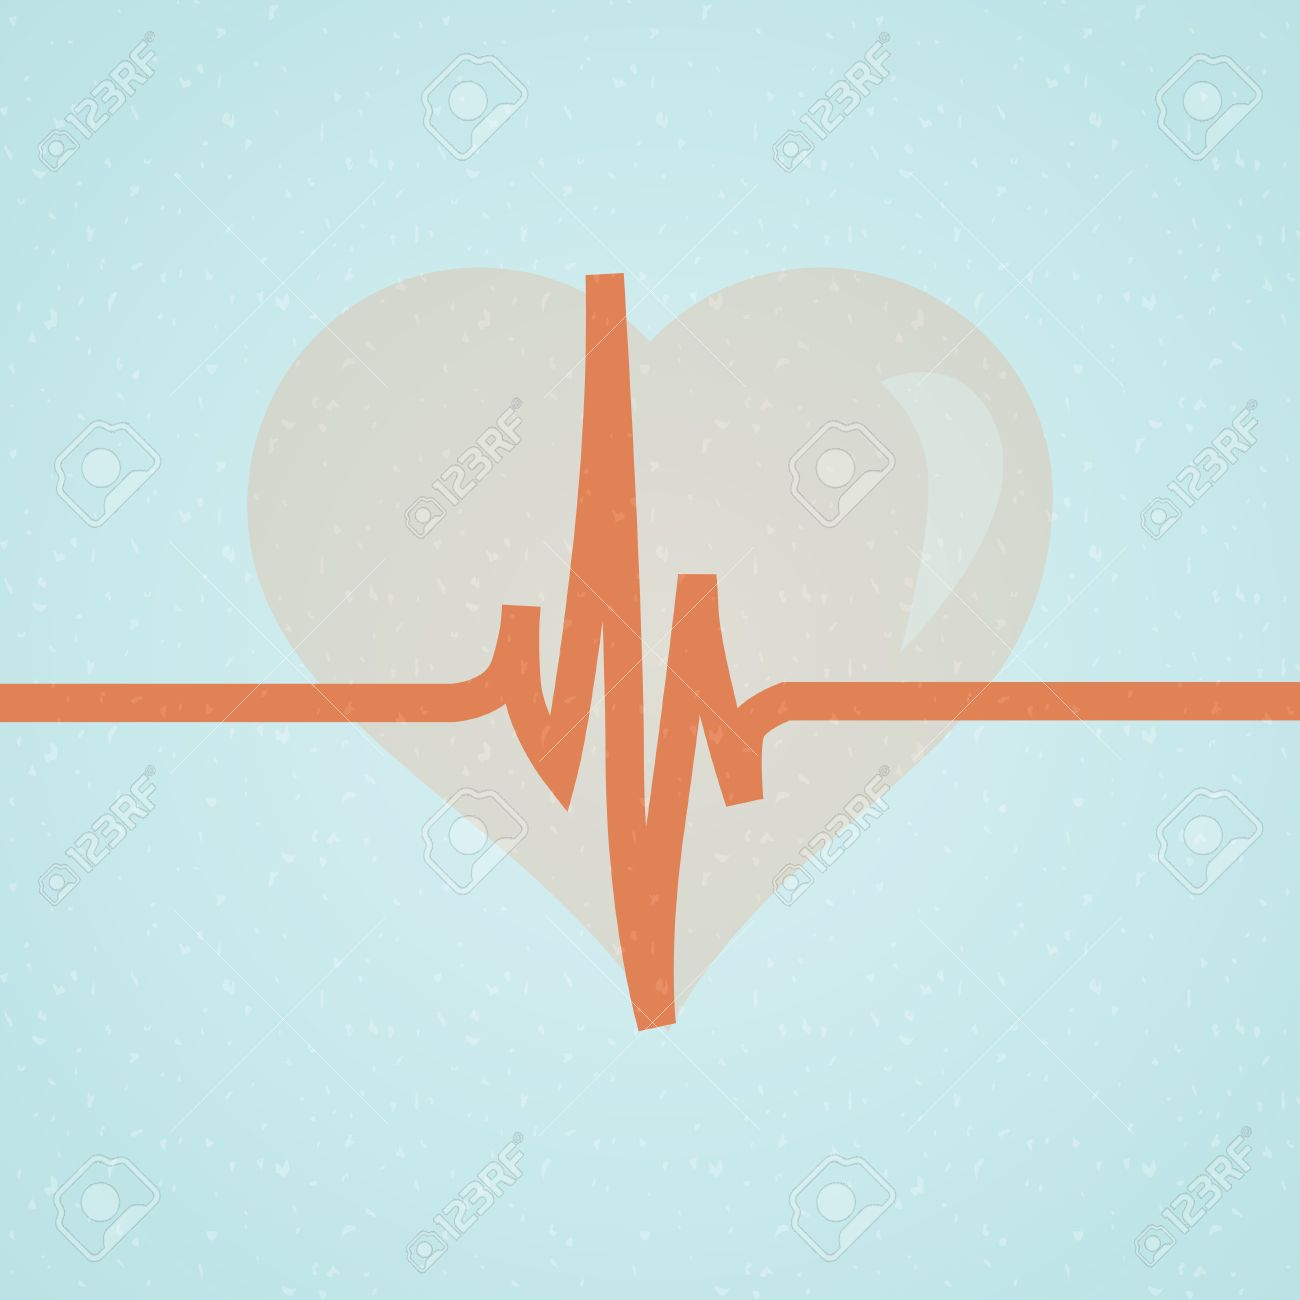 Vector medical background with heart and cardiogram Stock Vector - 22176164